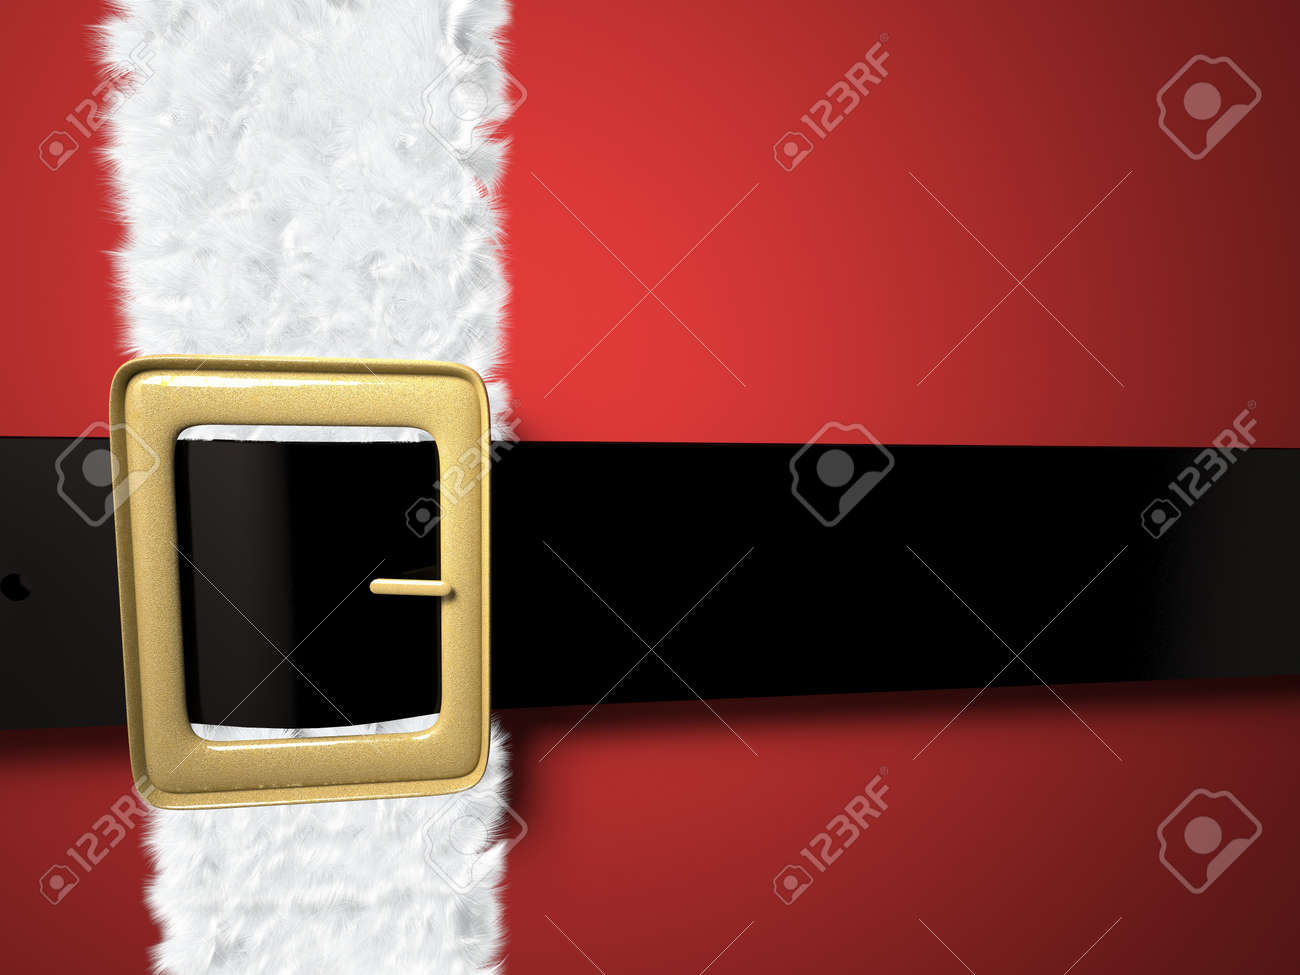 christmas background with santa claus belt and golden buckle stock photo 11578269 - Santa Claus Belt